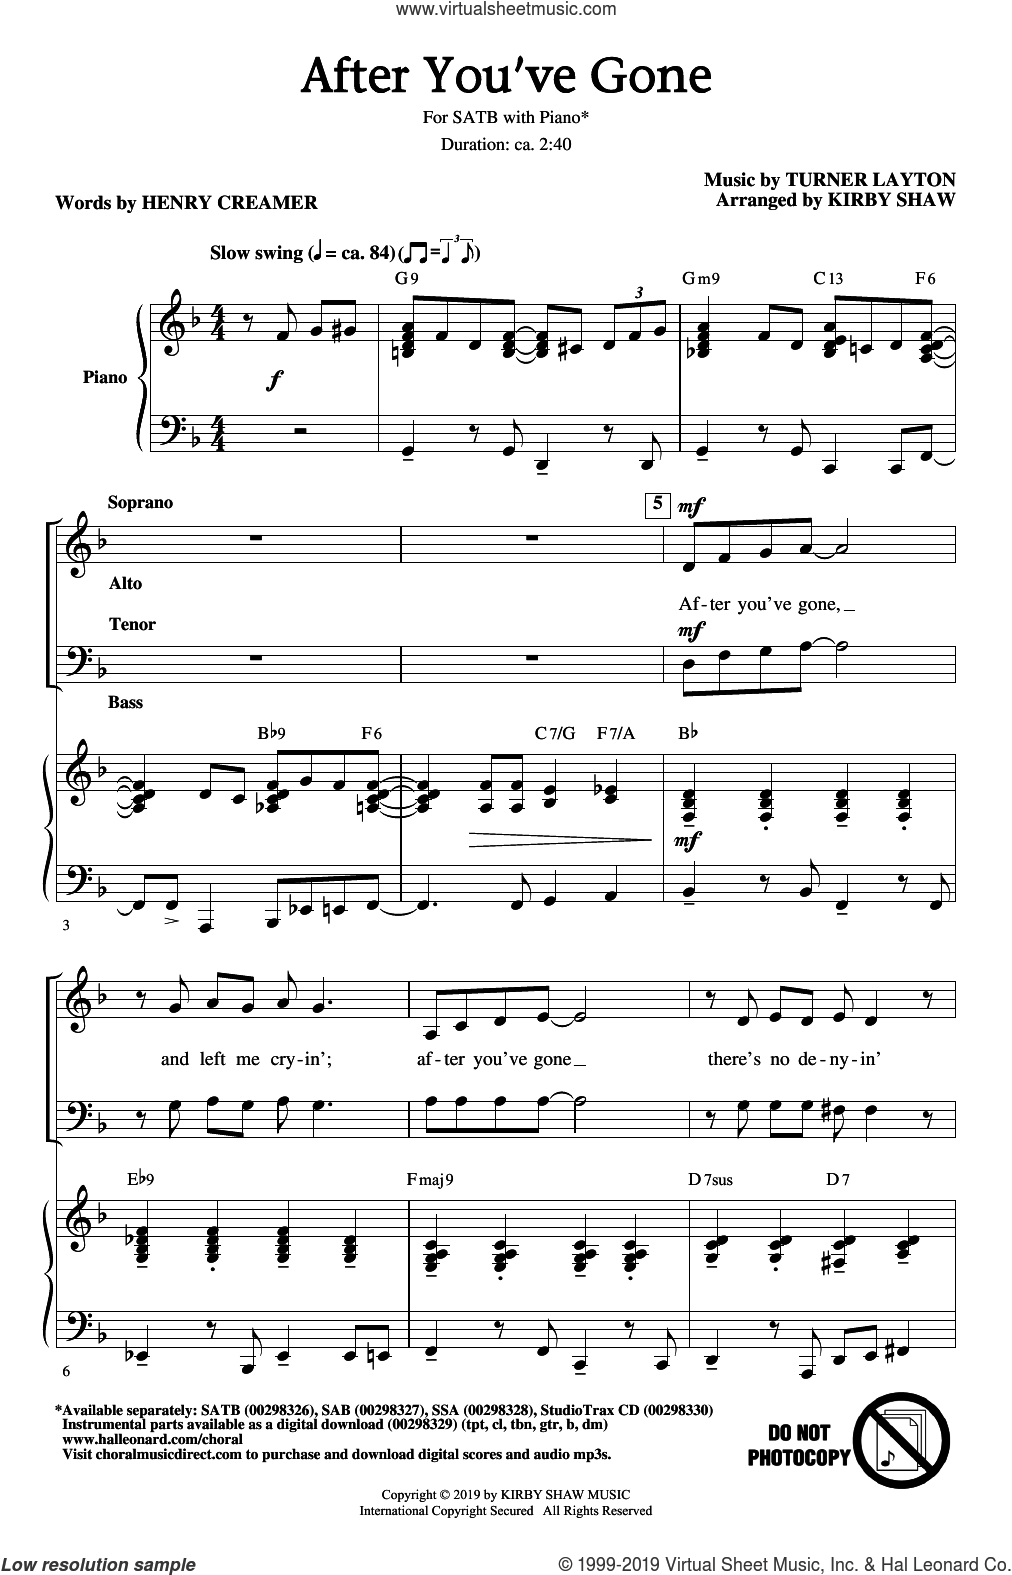 After You've Gone (from One Mo' Time) (arr. Kirby Shaw) sheet music for choir (SATB: soprano, alto, tenor, bass) by Henry Creamer, Kirby Shaw, Henry Creamer and Turner Layton and Turner Layton, intermediate skill level